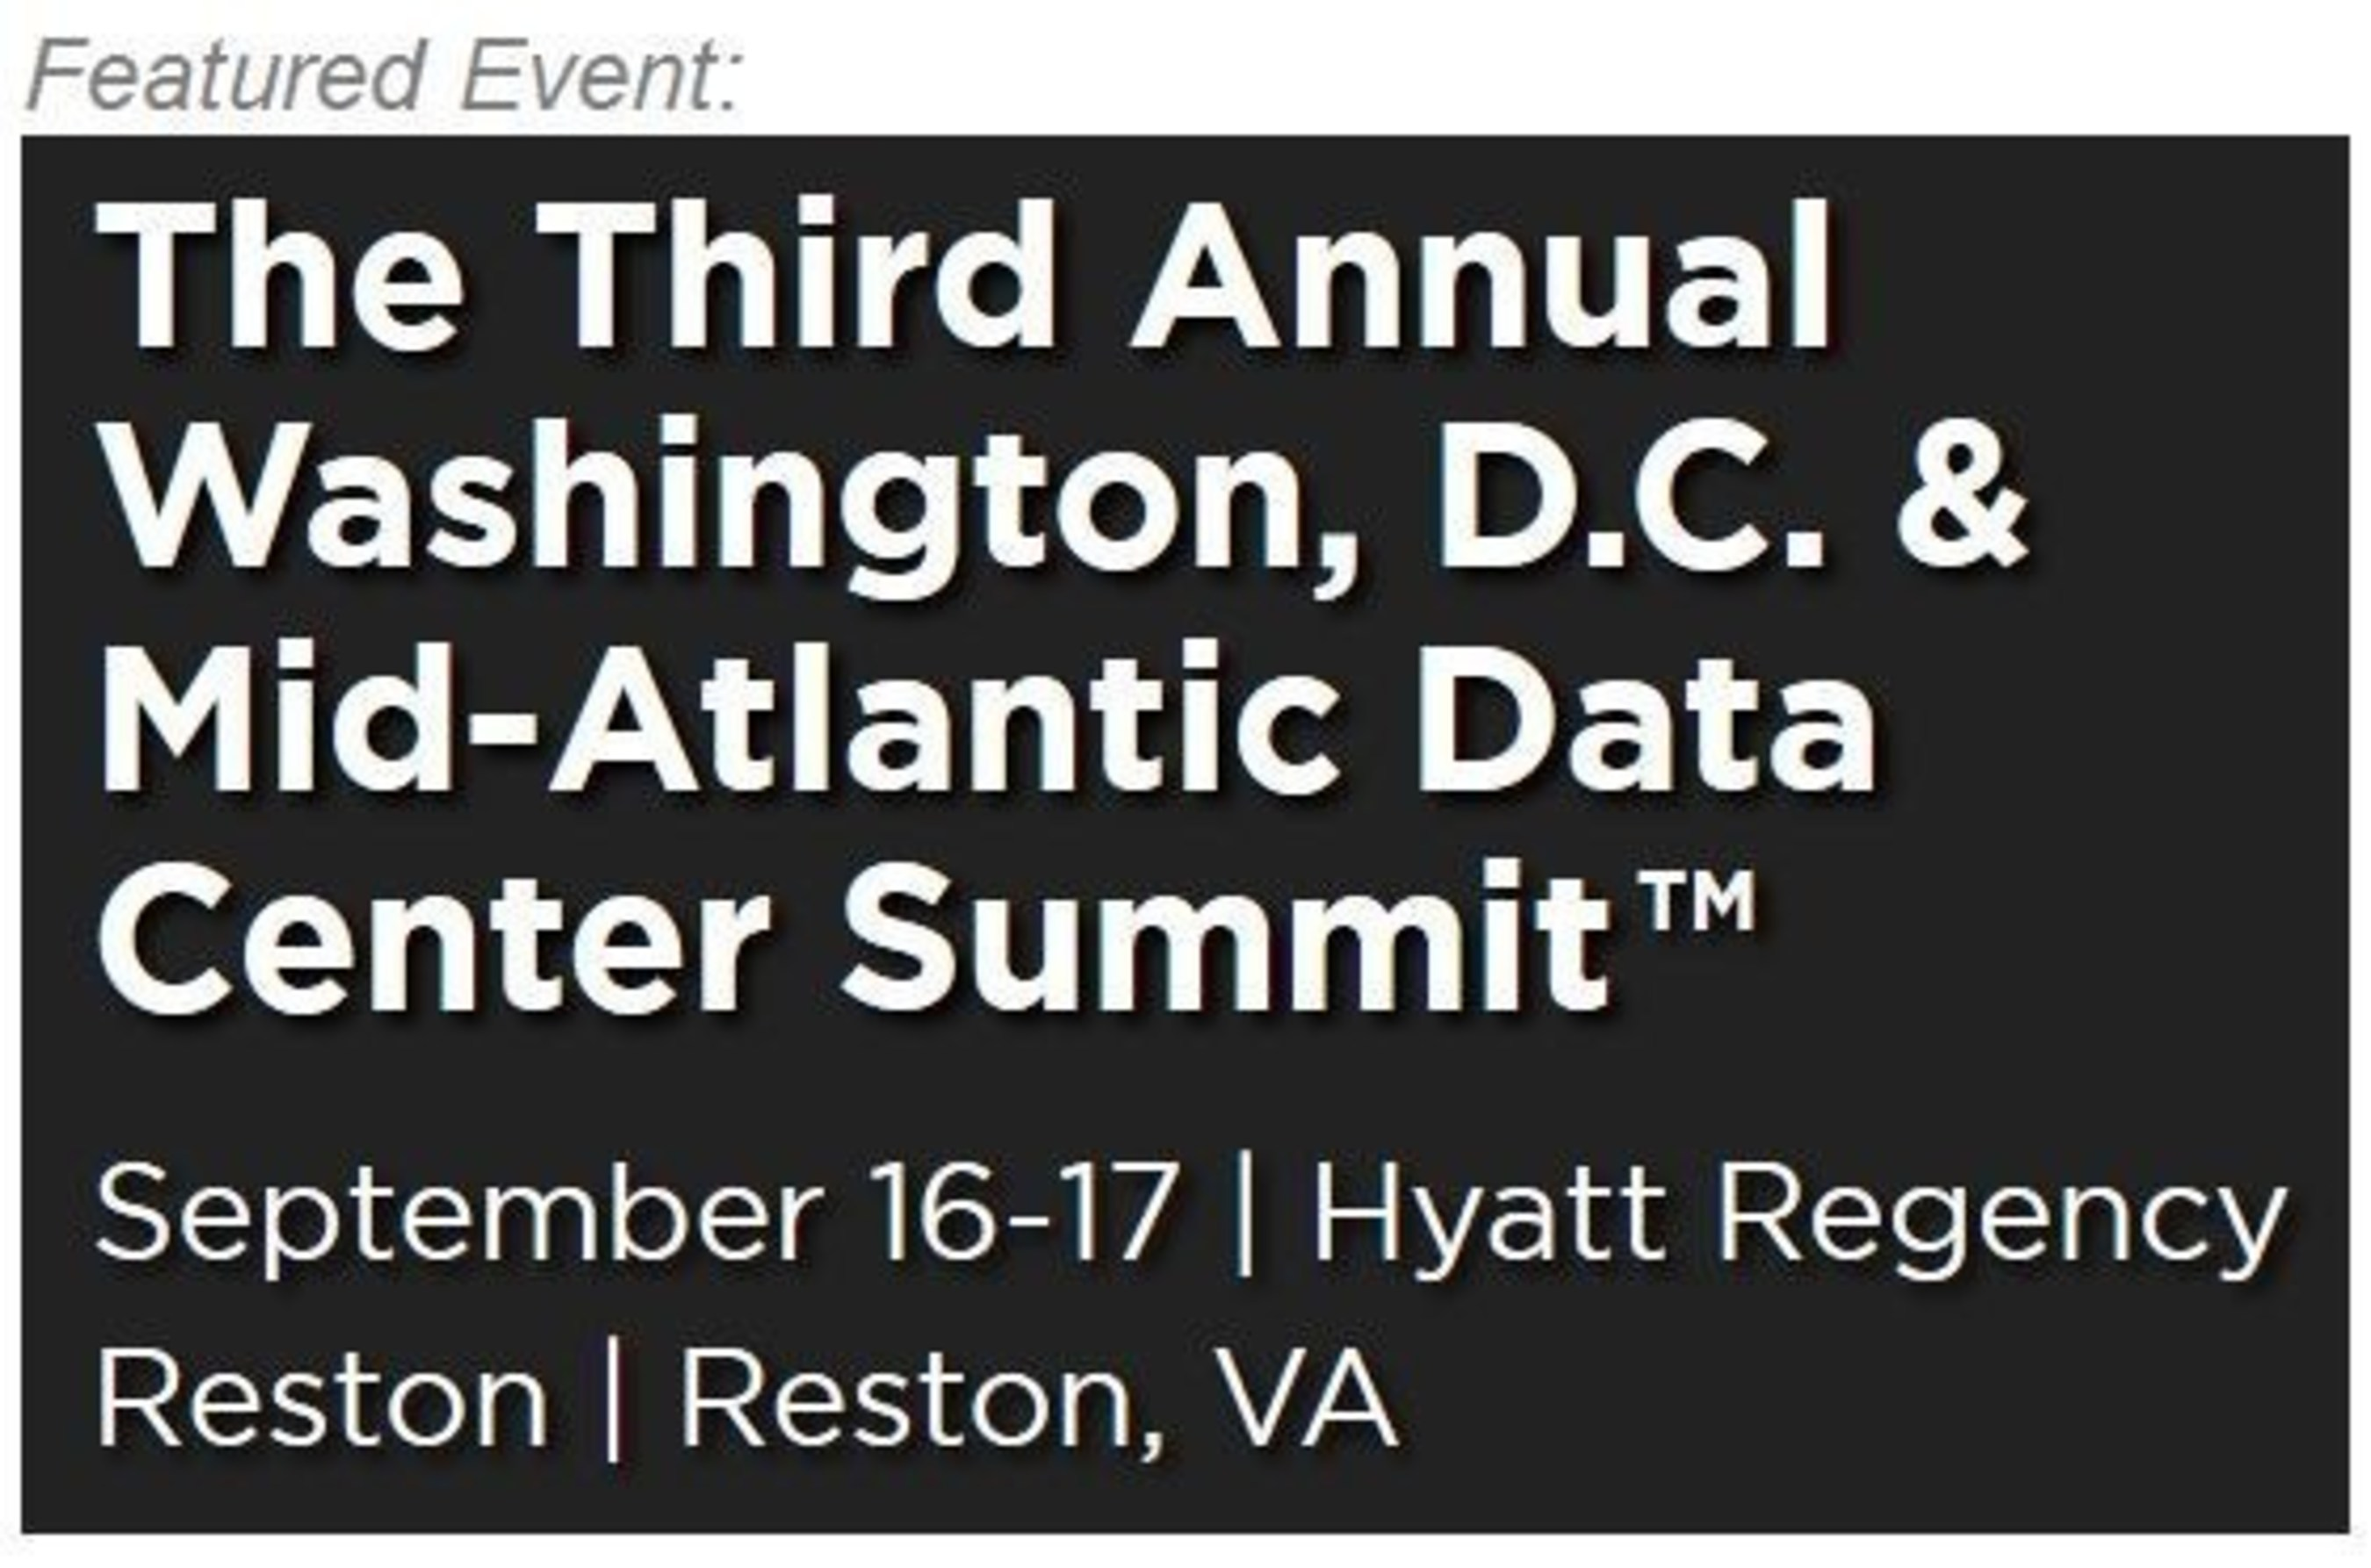 Washington, D.C. & Mid-Atlantic Data Center Summit: All-Star Speaker Line-Up; Senior-Level Audience: Will You Be Attending?